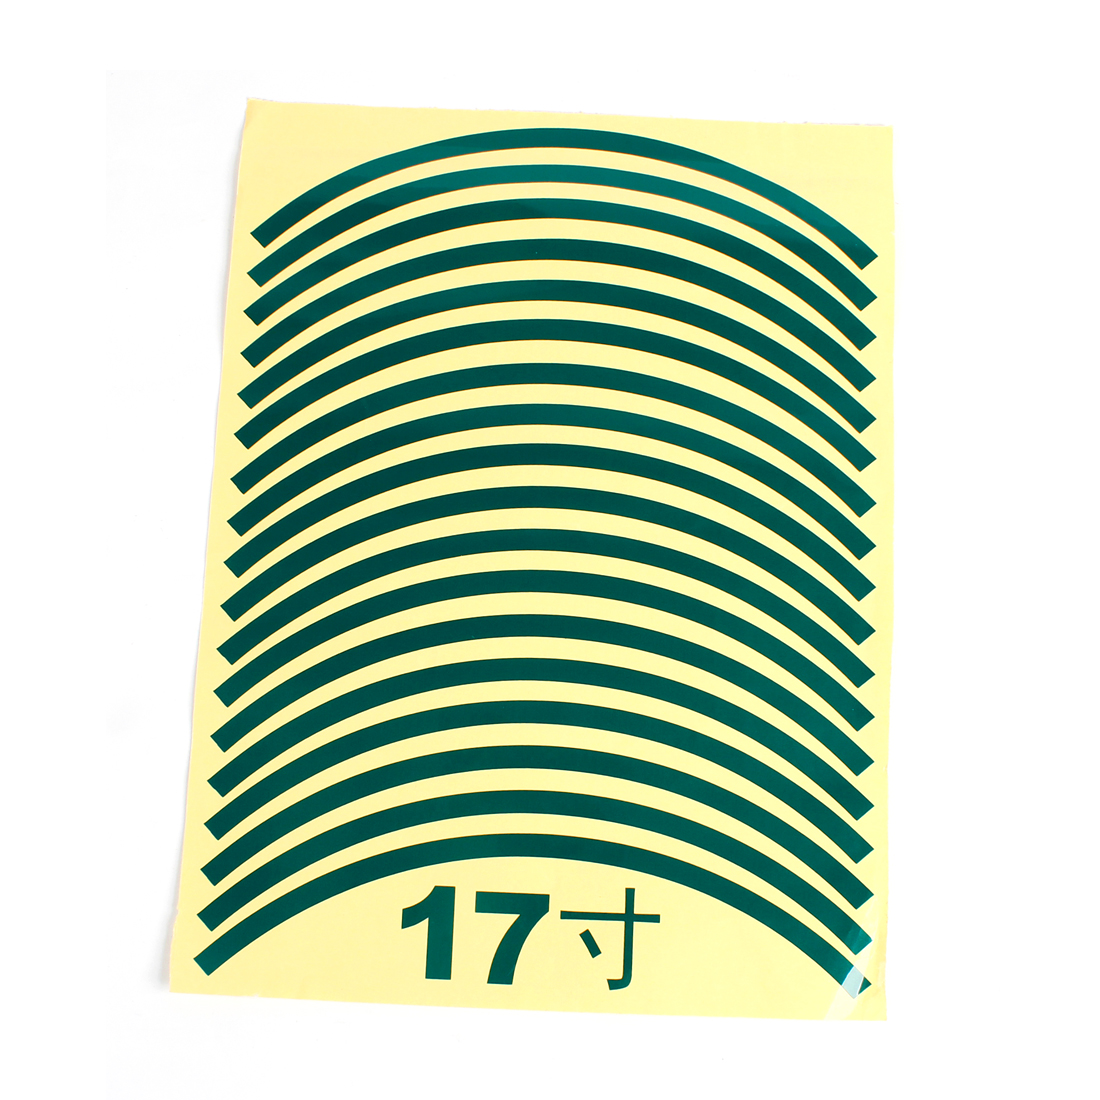 "Vehicle Car 29cm Long Green Wheel Tyre Tire Decal Sticker Stripes 18PCS for 17"" Wheels"